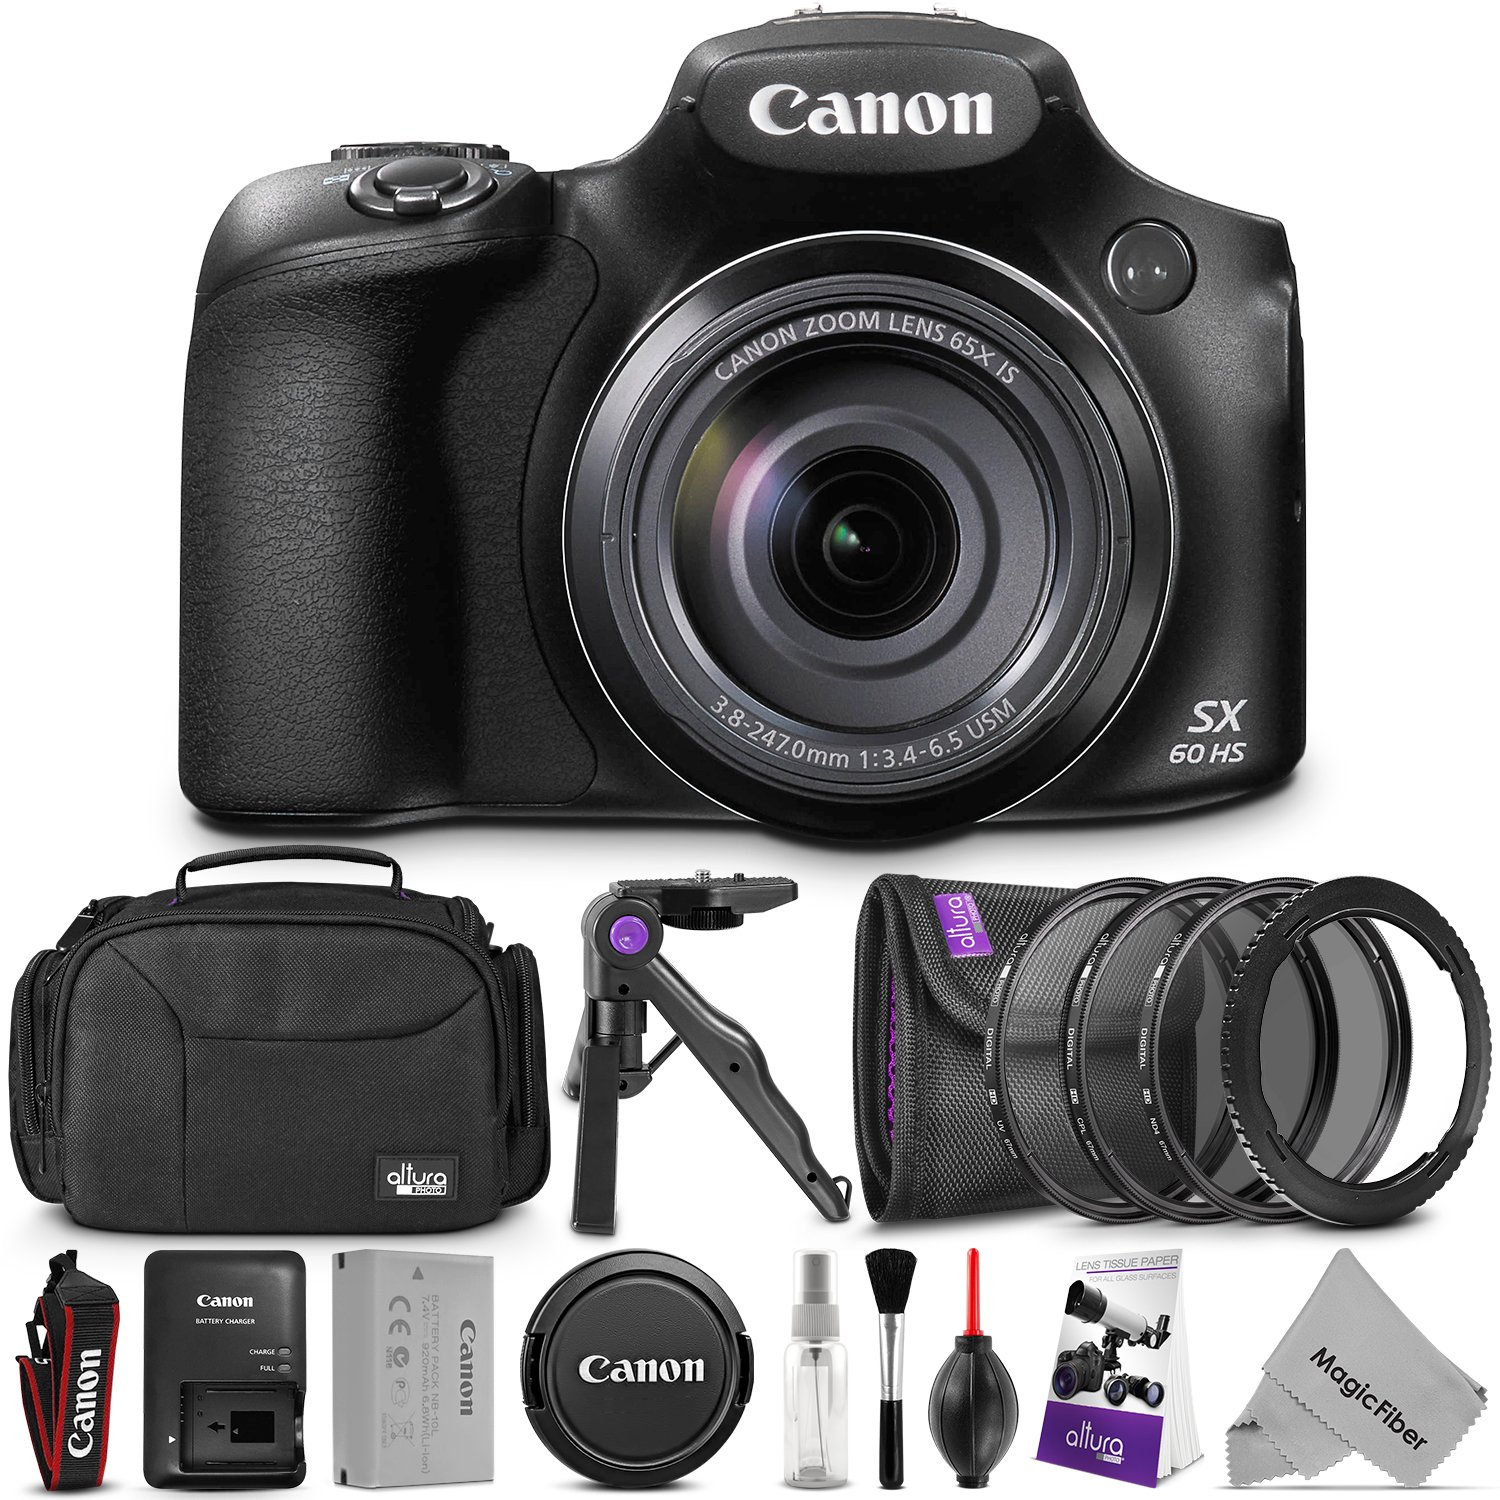 Canon PowerShot SX60 HS Digital Camera w/ Essential Photo and Travel Bundle – Includes: Altura Photo Shoulder Bag, UV-CPL-ND4, 67mm Lens Adapter Ring, Camera Cleaning Set by Canon